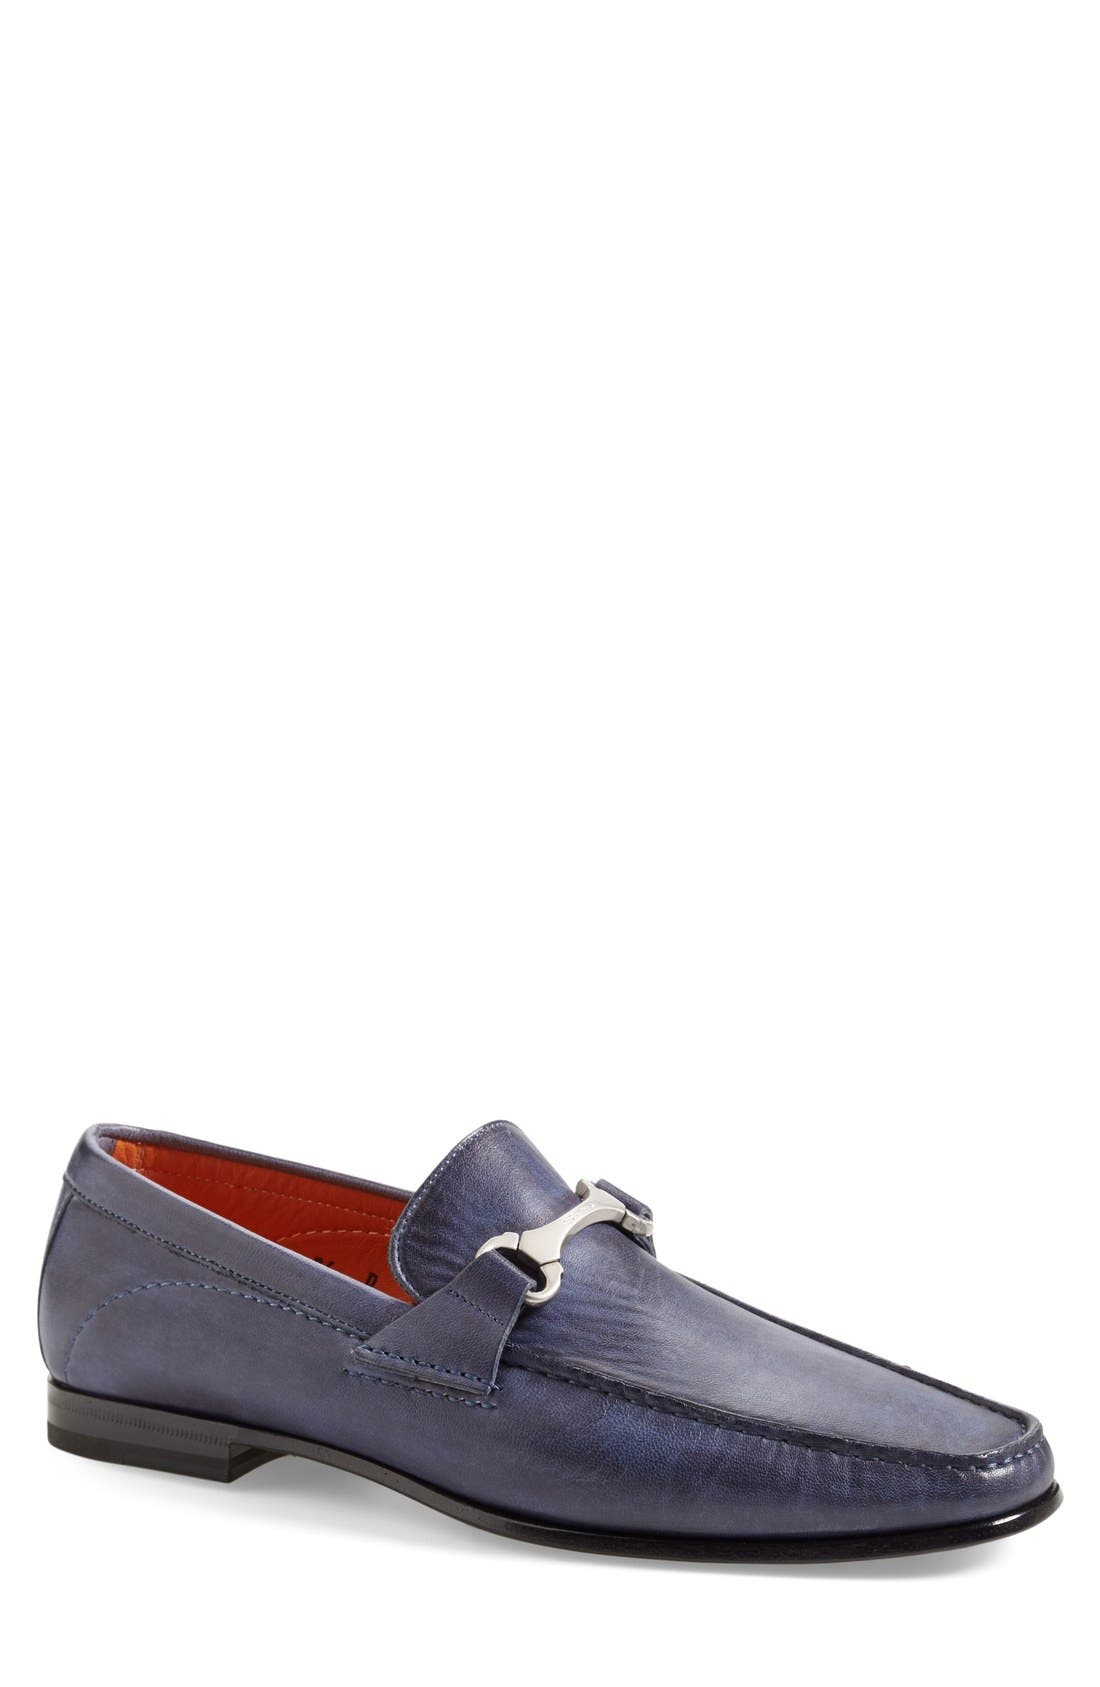 'Wake' Bit Loafer,                             Main thumbnail 1, color,                             Blue